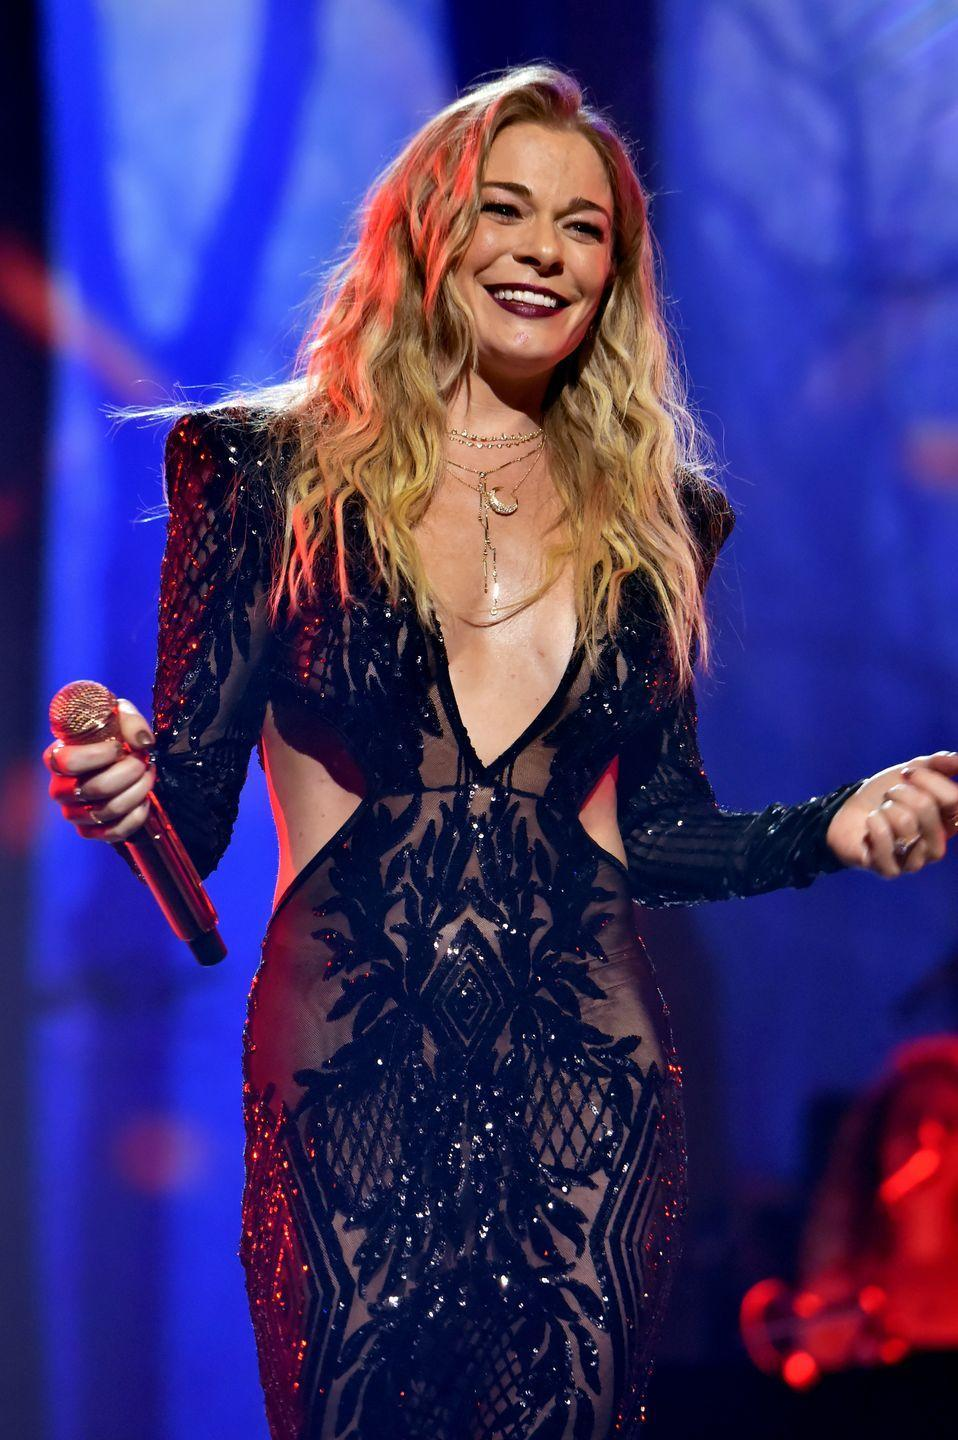 """<p>Eight-year-old LeAnn Rimes <a href=""""https://www.youtube.com/watch?v=_WGvlT8Zb-k"""" rel=""""nofollow noopener"""" target=""""_blank"""" data-ylk=""""slk:held her ground for several weeks"""" class=""""link rapid-noclick-resp"""">held her ground for several weeks</a> in the competition, with her big hair, big voice and big personality. A few years later, this powerhouse crooned her way into our hearts with her hit song """"Blue"""" in 1996.</p>"""